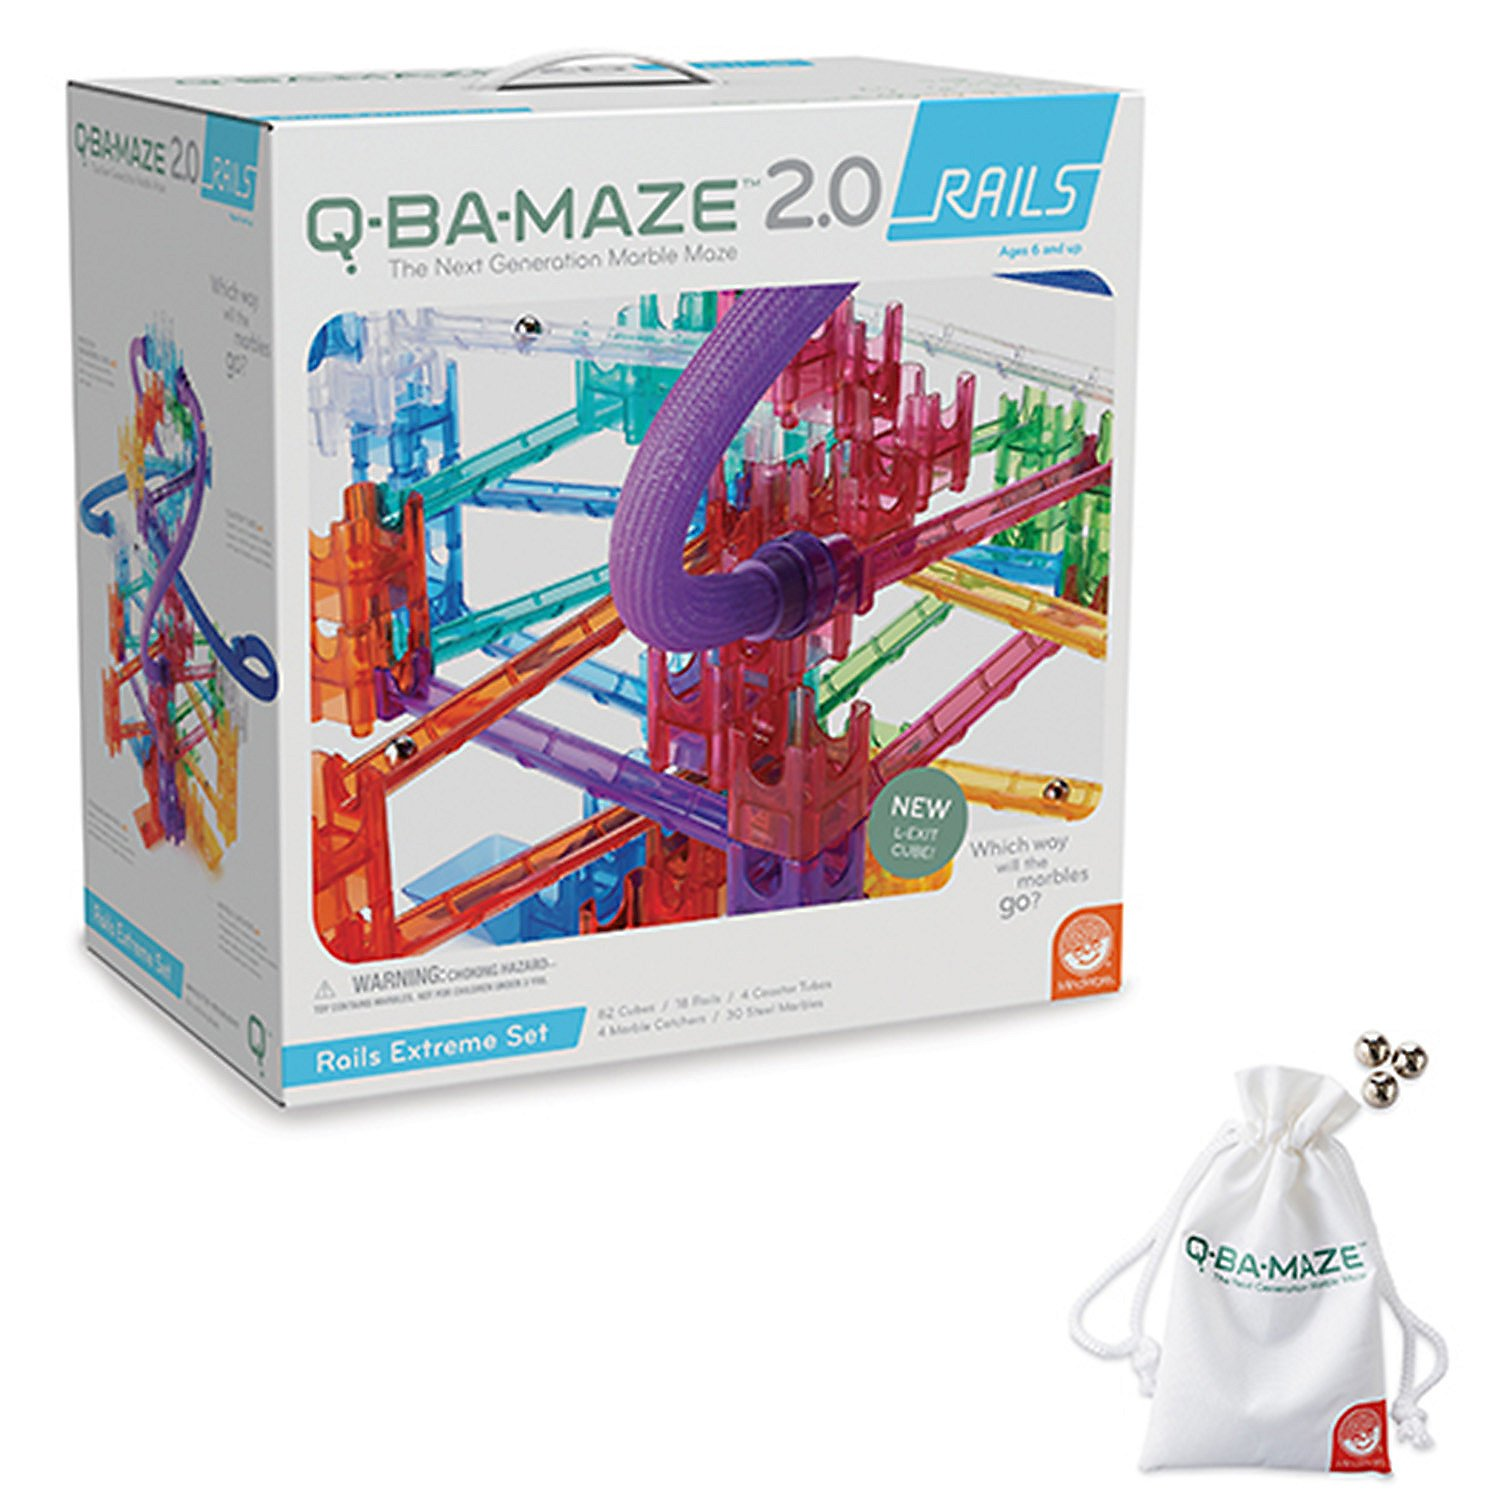 Q-BA-MAZE 2.0: RAILS EXTREME WITH FREE MARBLES AND STORAGE BAG